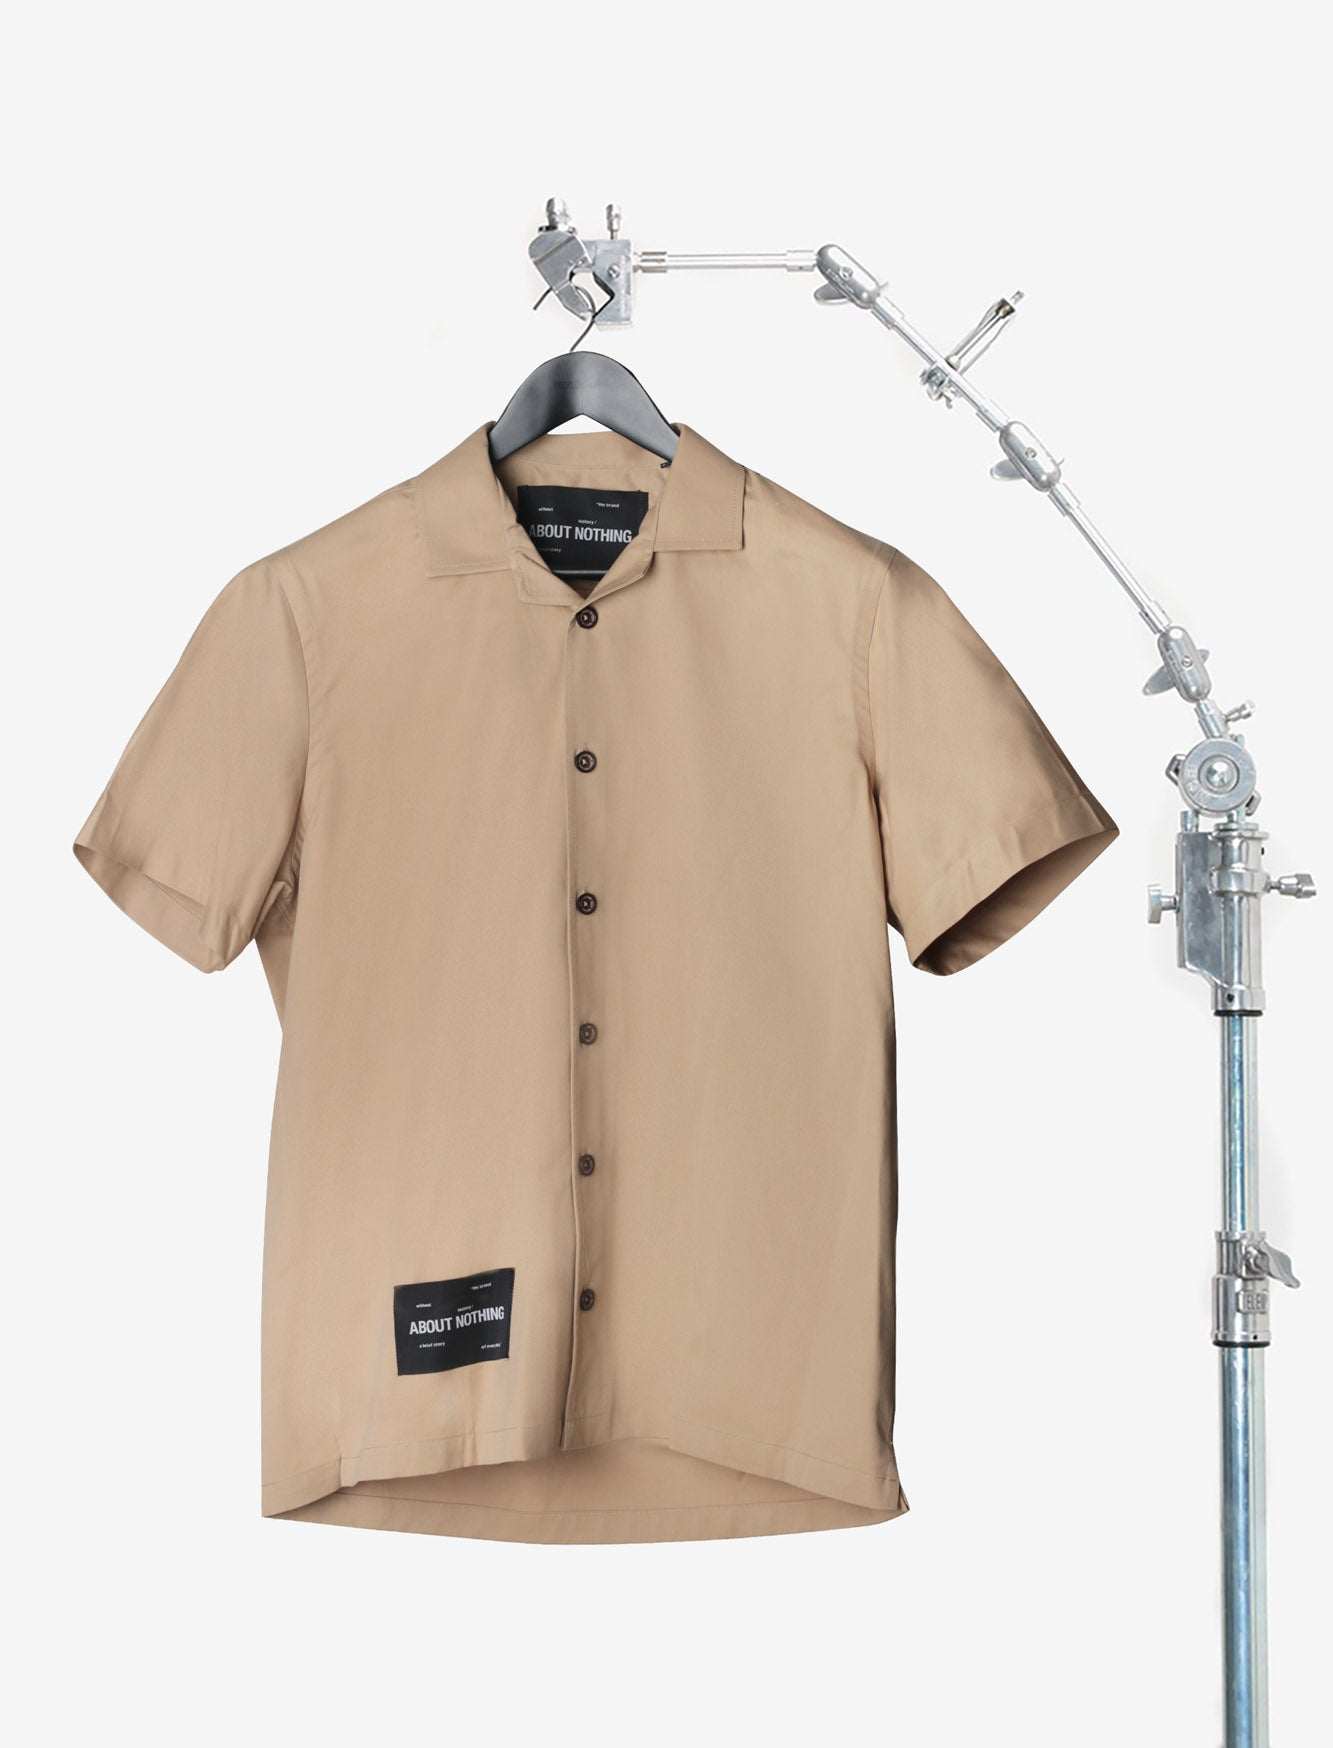 BOWLING SHIRT // LIGHT BROWN